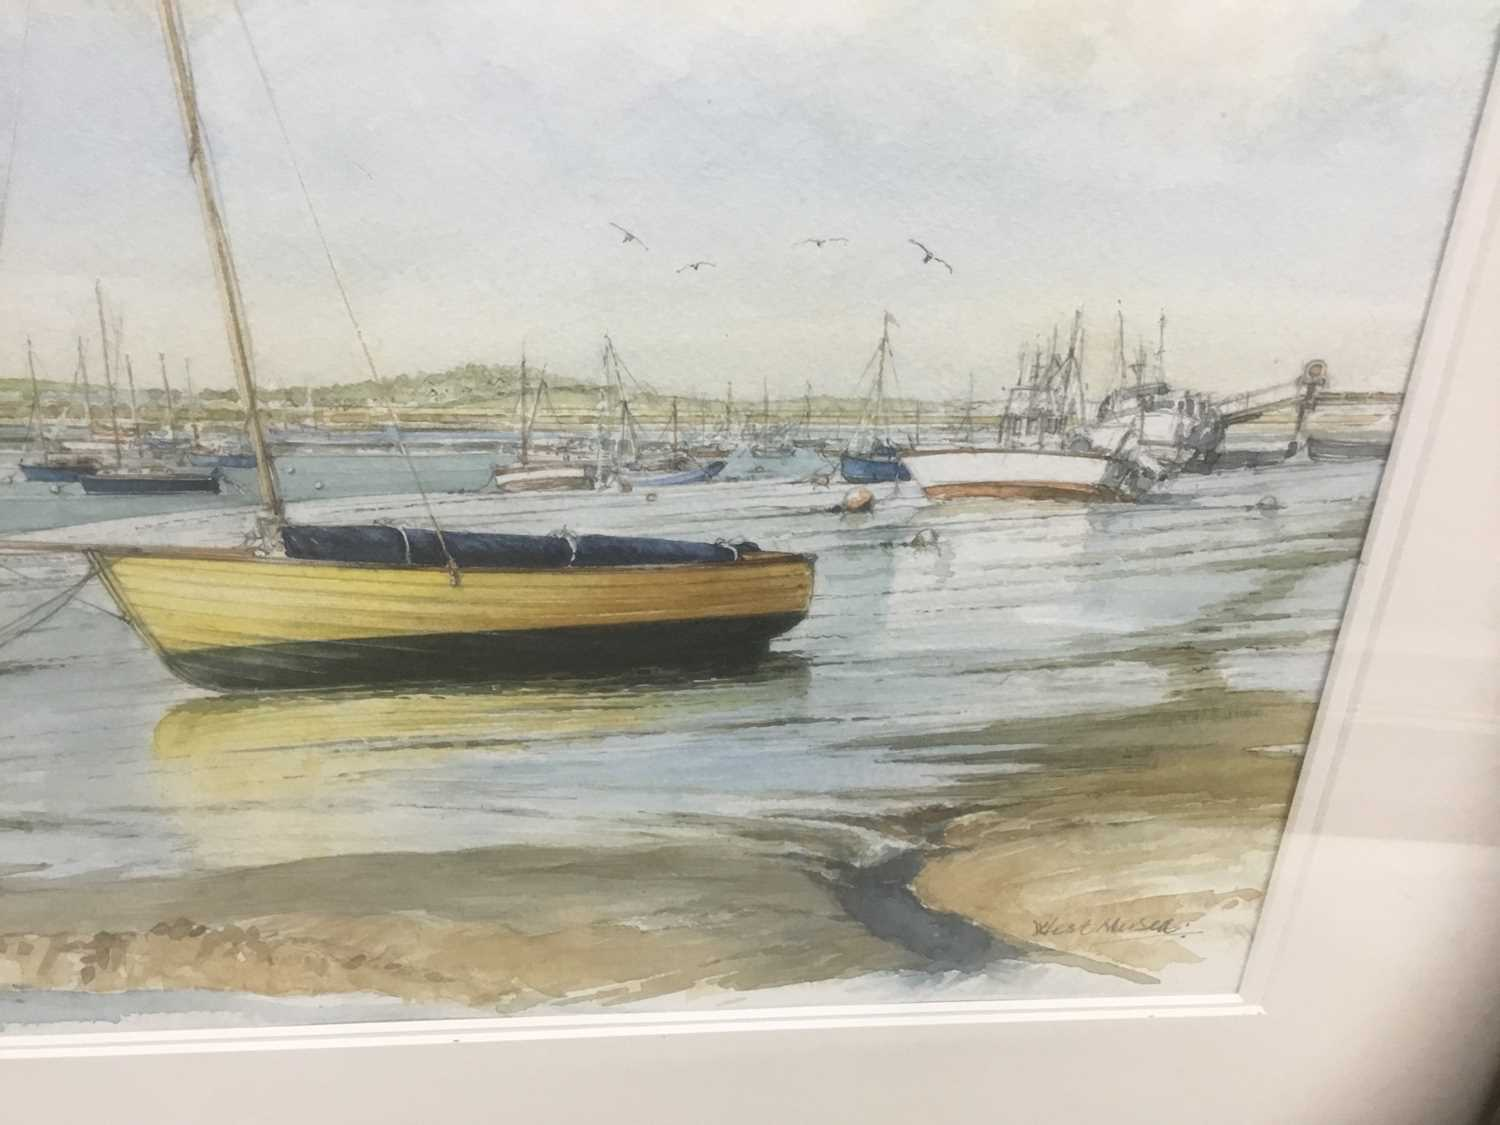 Edwin Meayers (b.1927) watercolour - West Mersea, signed, inscribed and dated '07, 42cm x 67cm, in g - Image 6 of 8